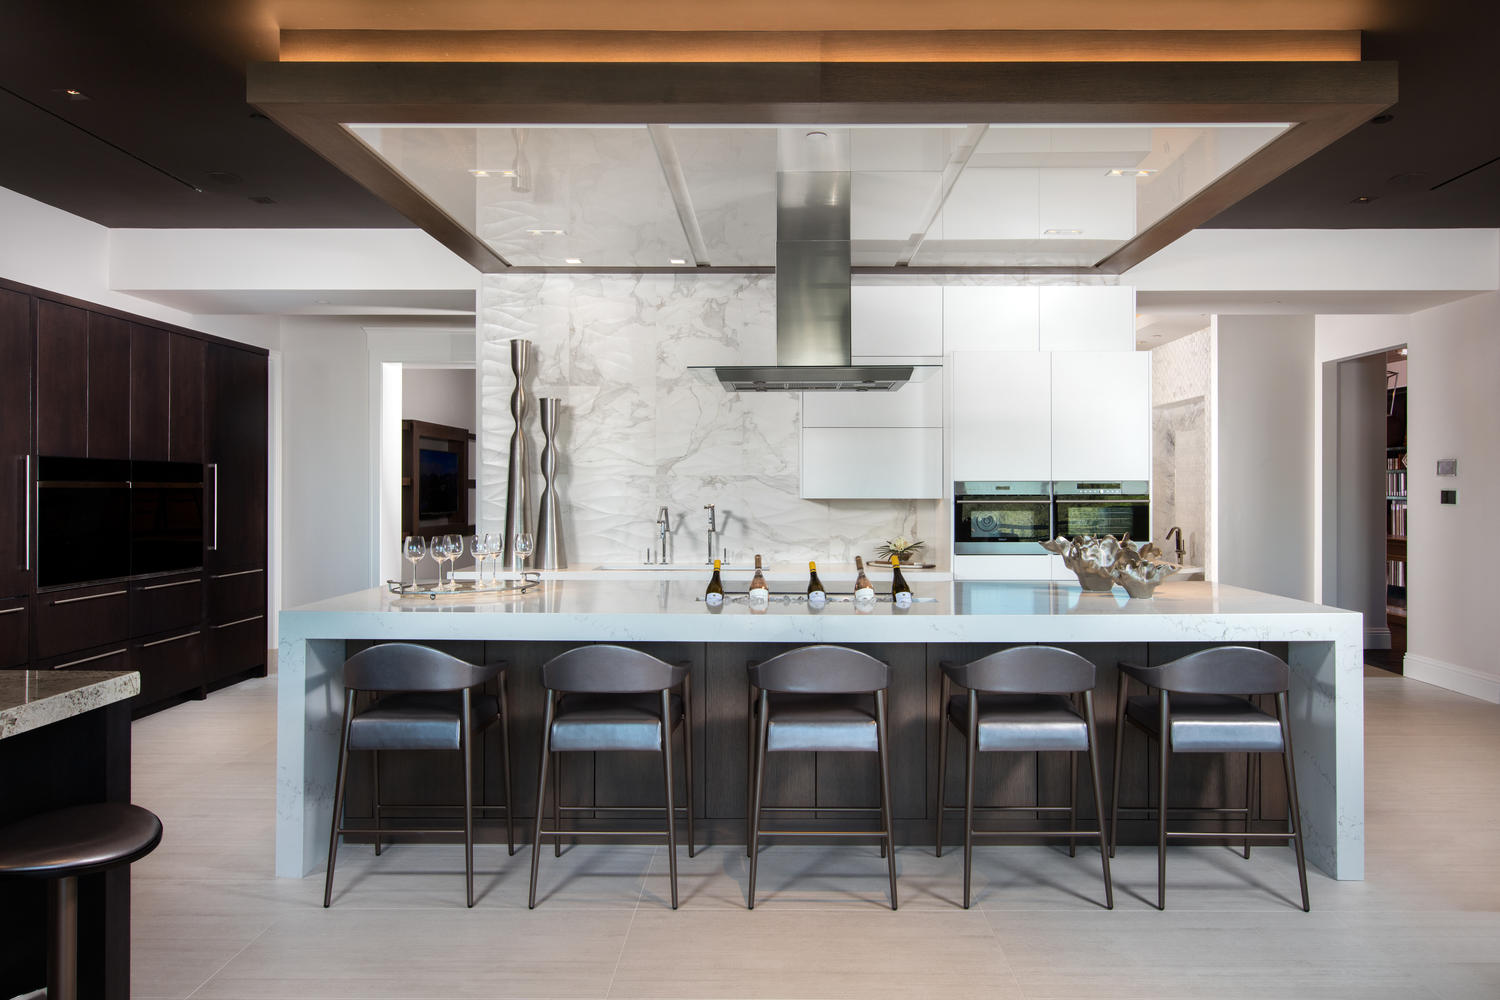 Selection Studio The fully equipped kitchen features Wolf appliances, including wall ovens, a steam oven, microwave oven, induction cooktop and Sub-Zero refrigerators.jpg